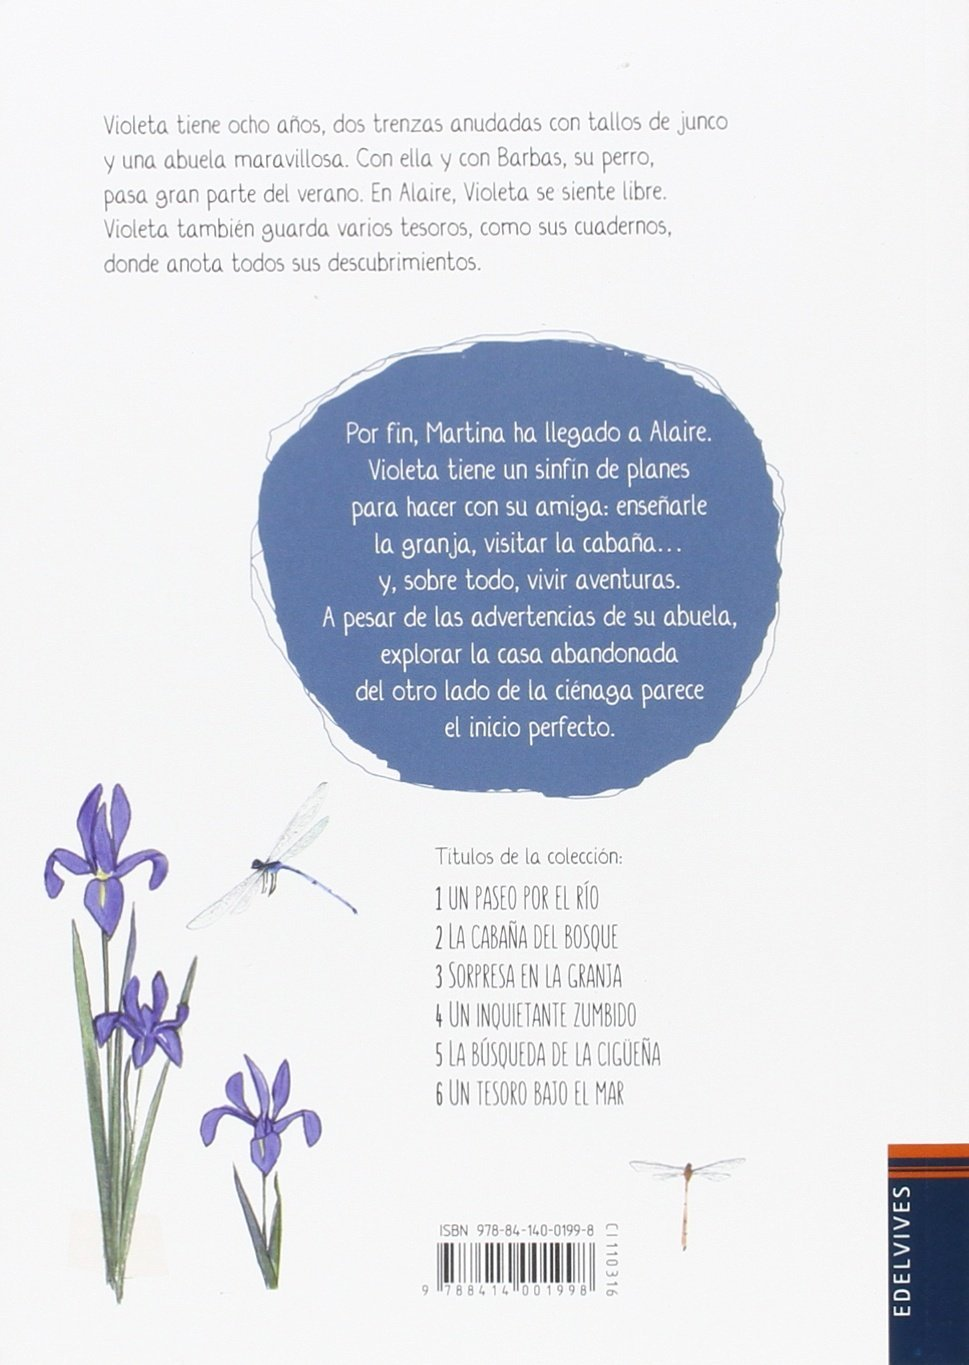 Los cuadernos de Violeta. Un inquietante zumbido (Spanish Edition): Pepe Maestro, Edelvives, Merce López: 9788414001998: Amazon.com: Books